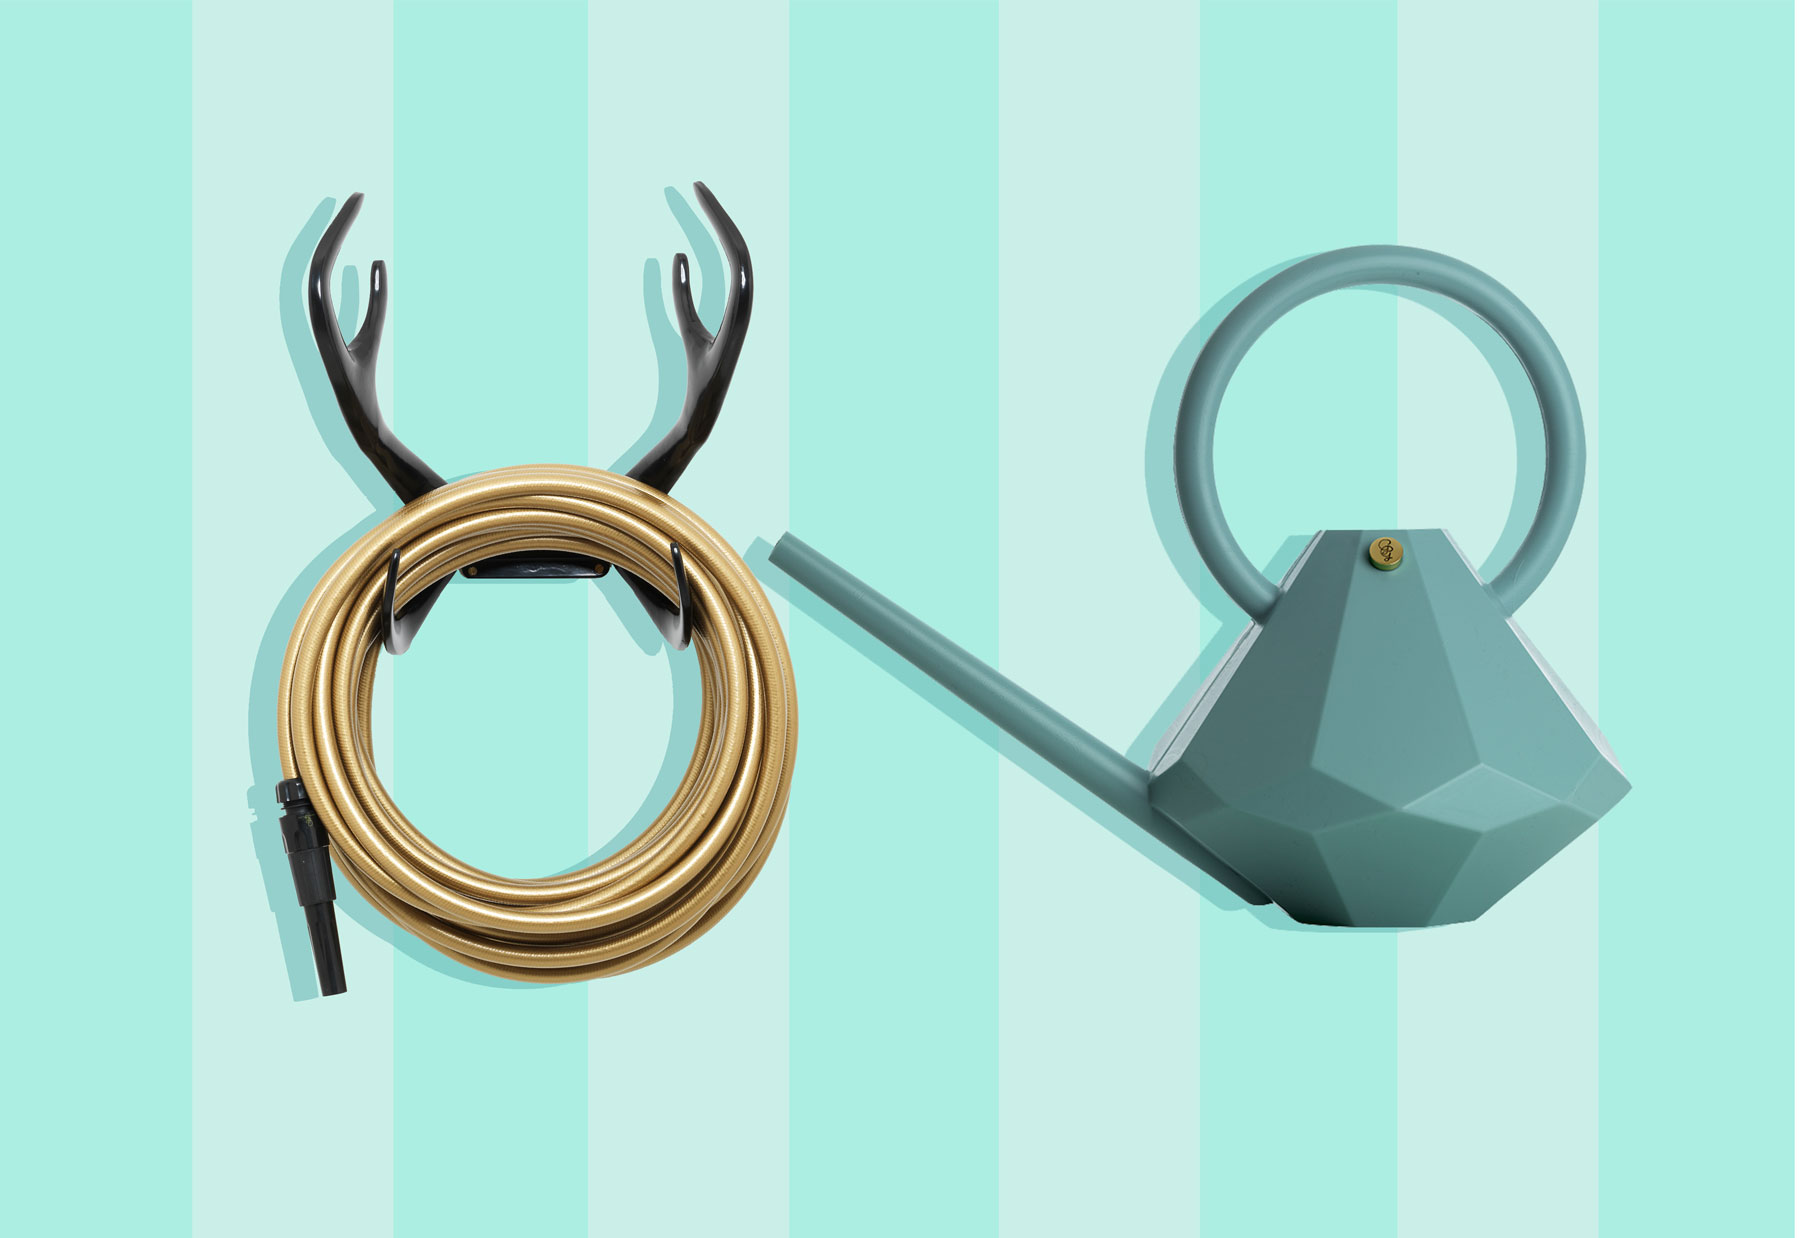 Cool garden tools - garden glory gear watering can and hose tout